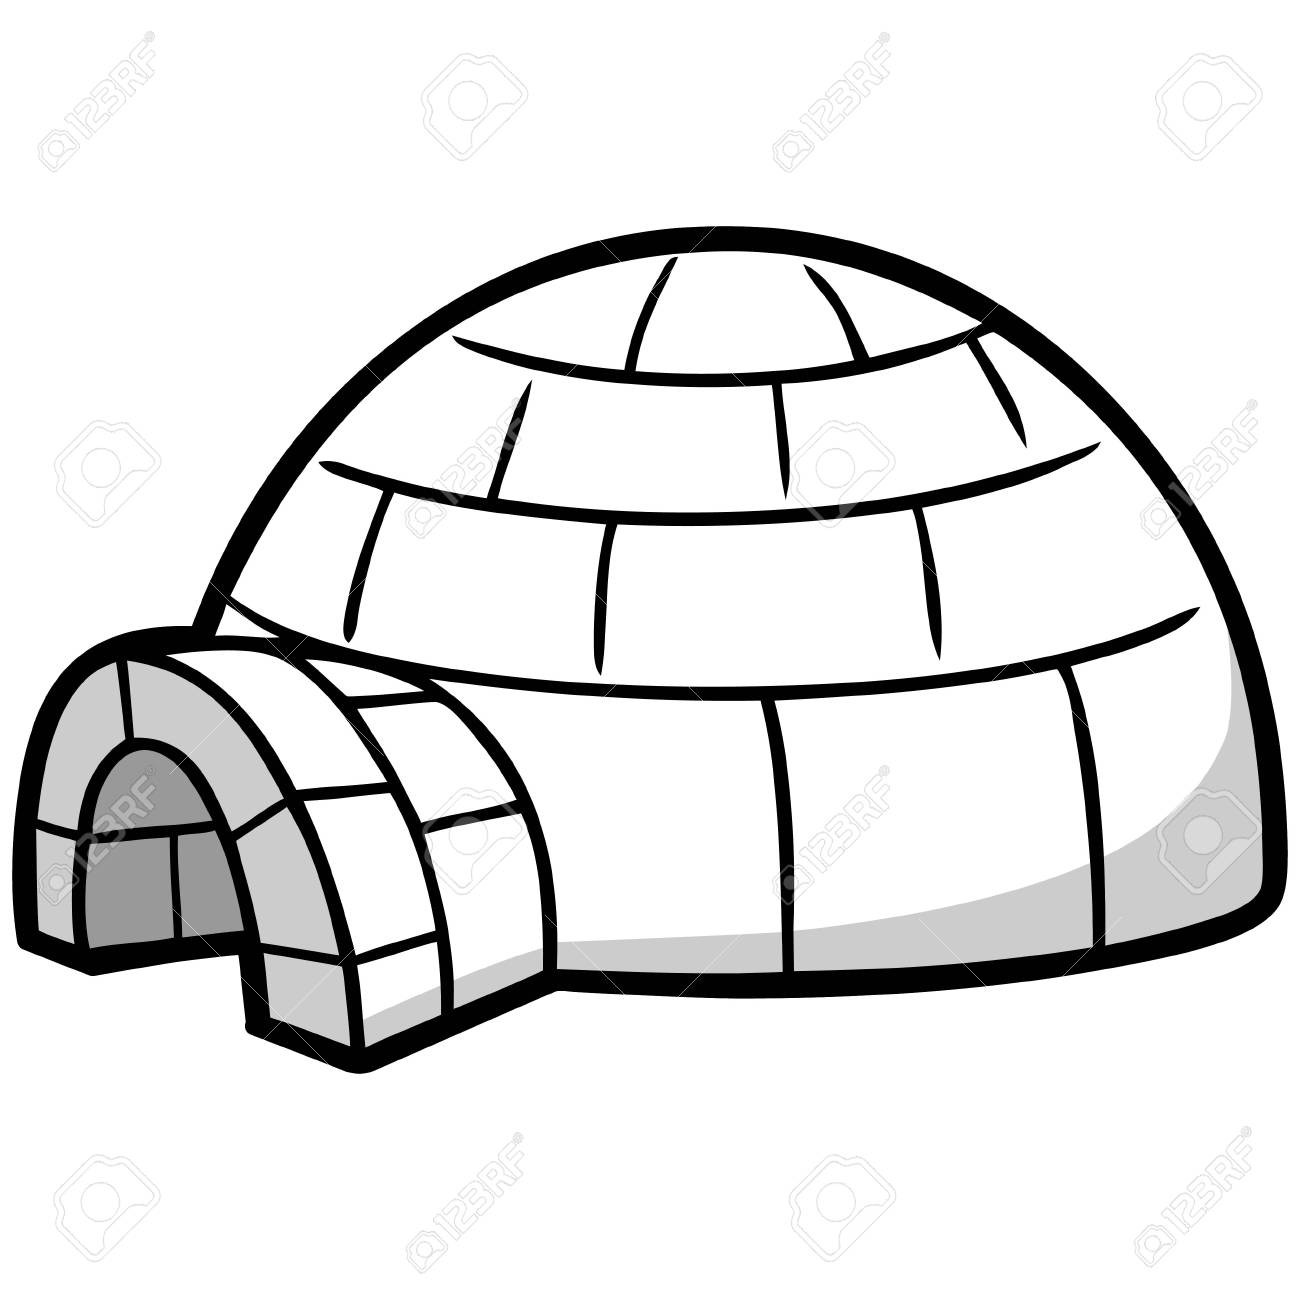 Igloo clipart black and white 5 » Clipart Station.